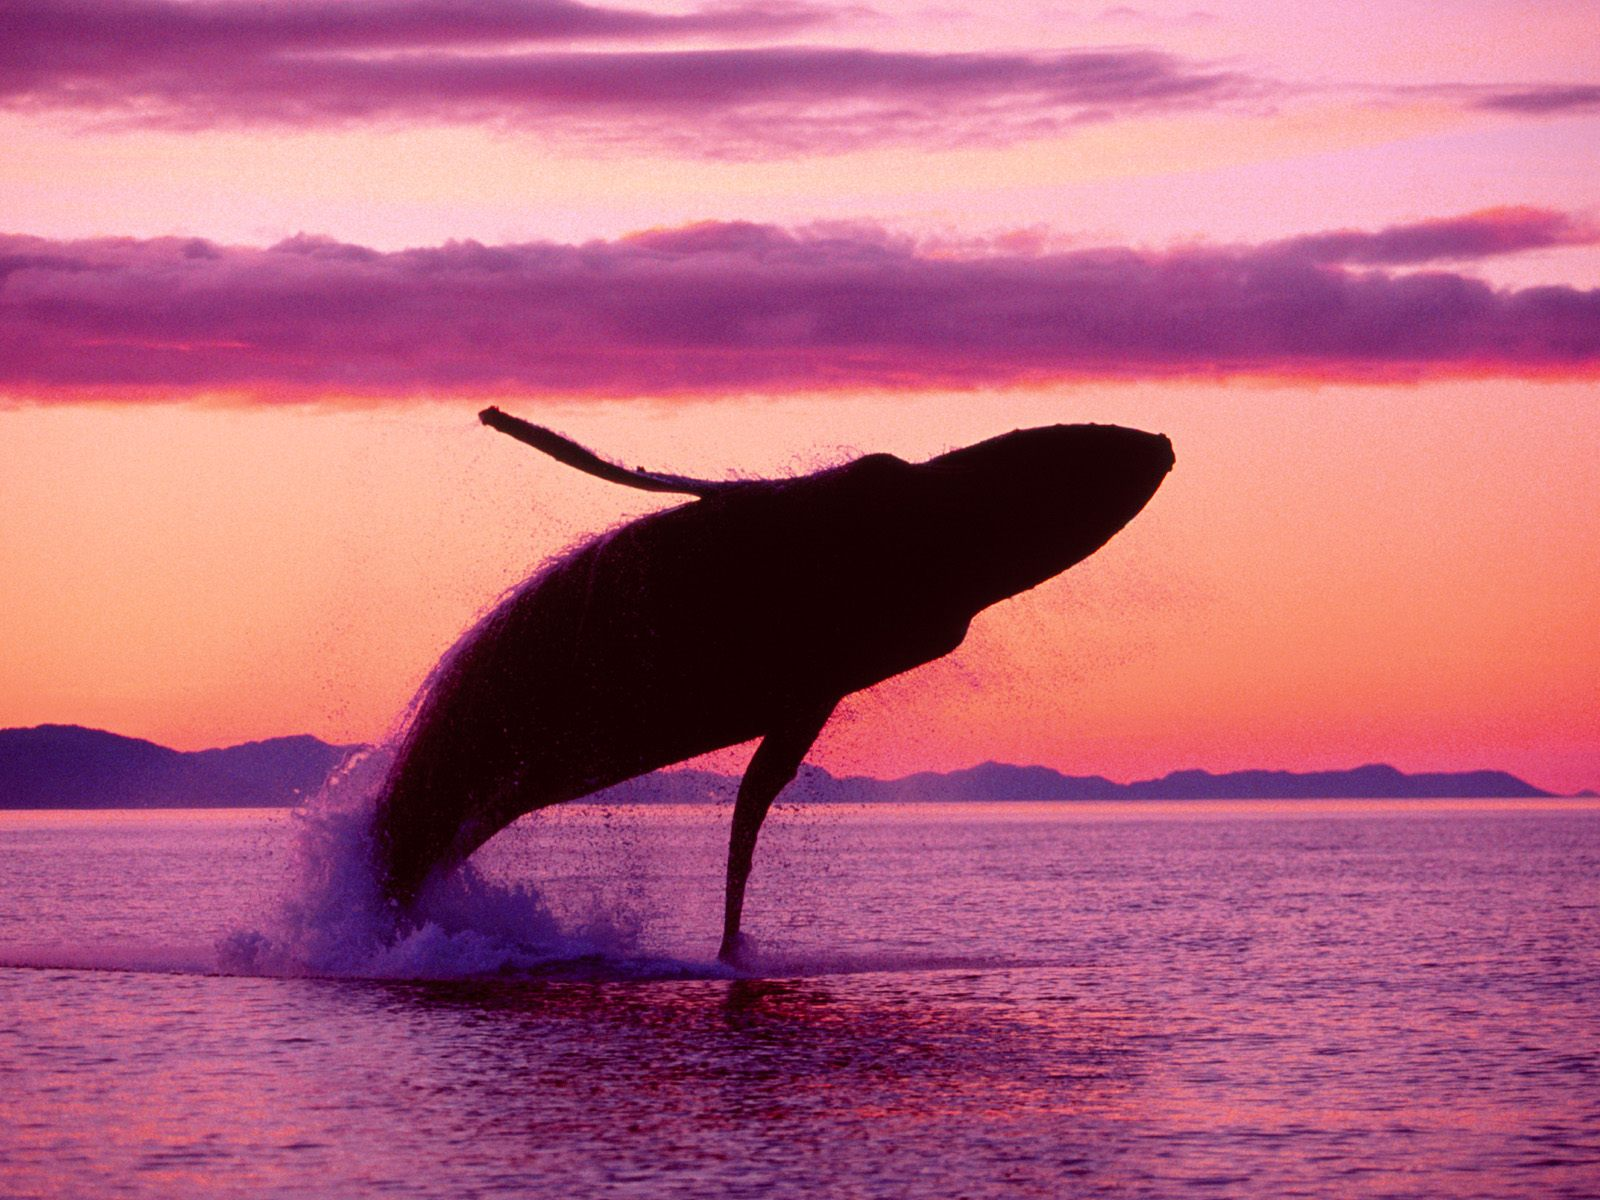 Humpback Whale Images amp Pictures   Becuo 1600x1200